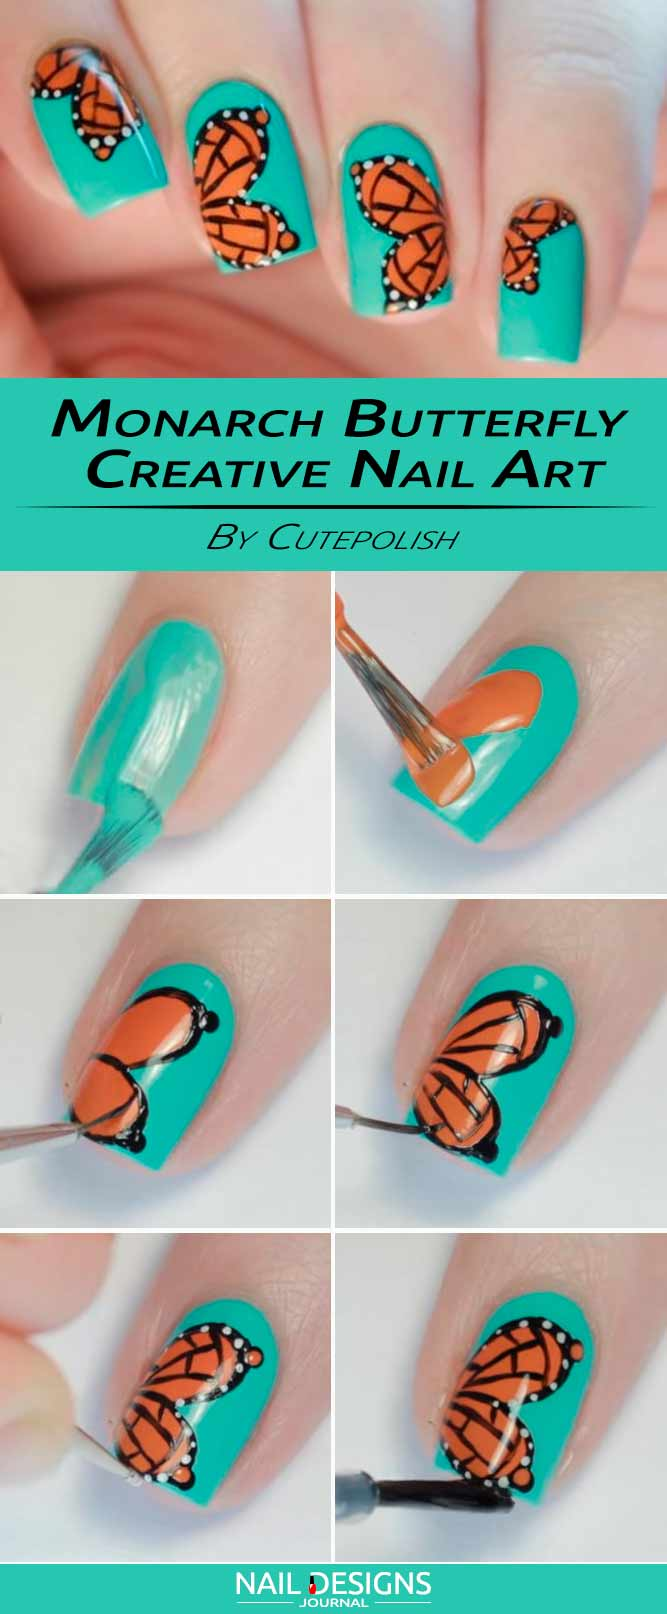 Monarch Butterfly Creative Nails Art